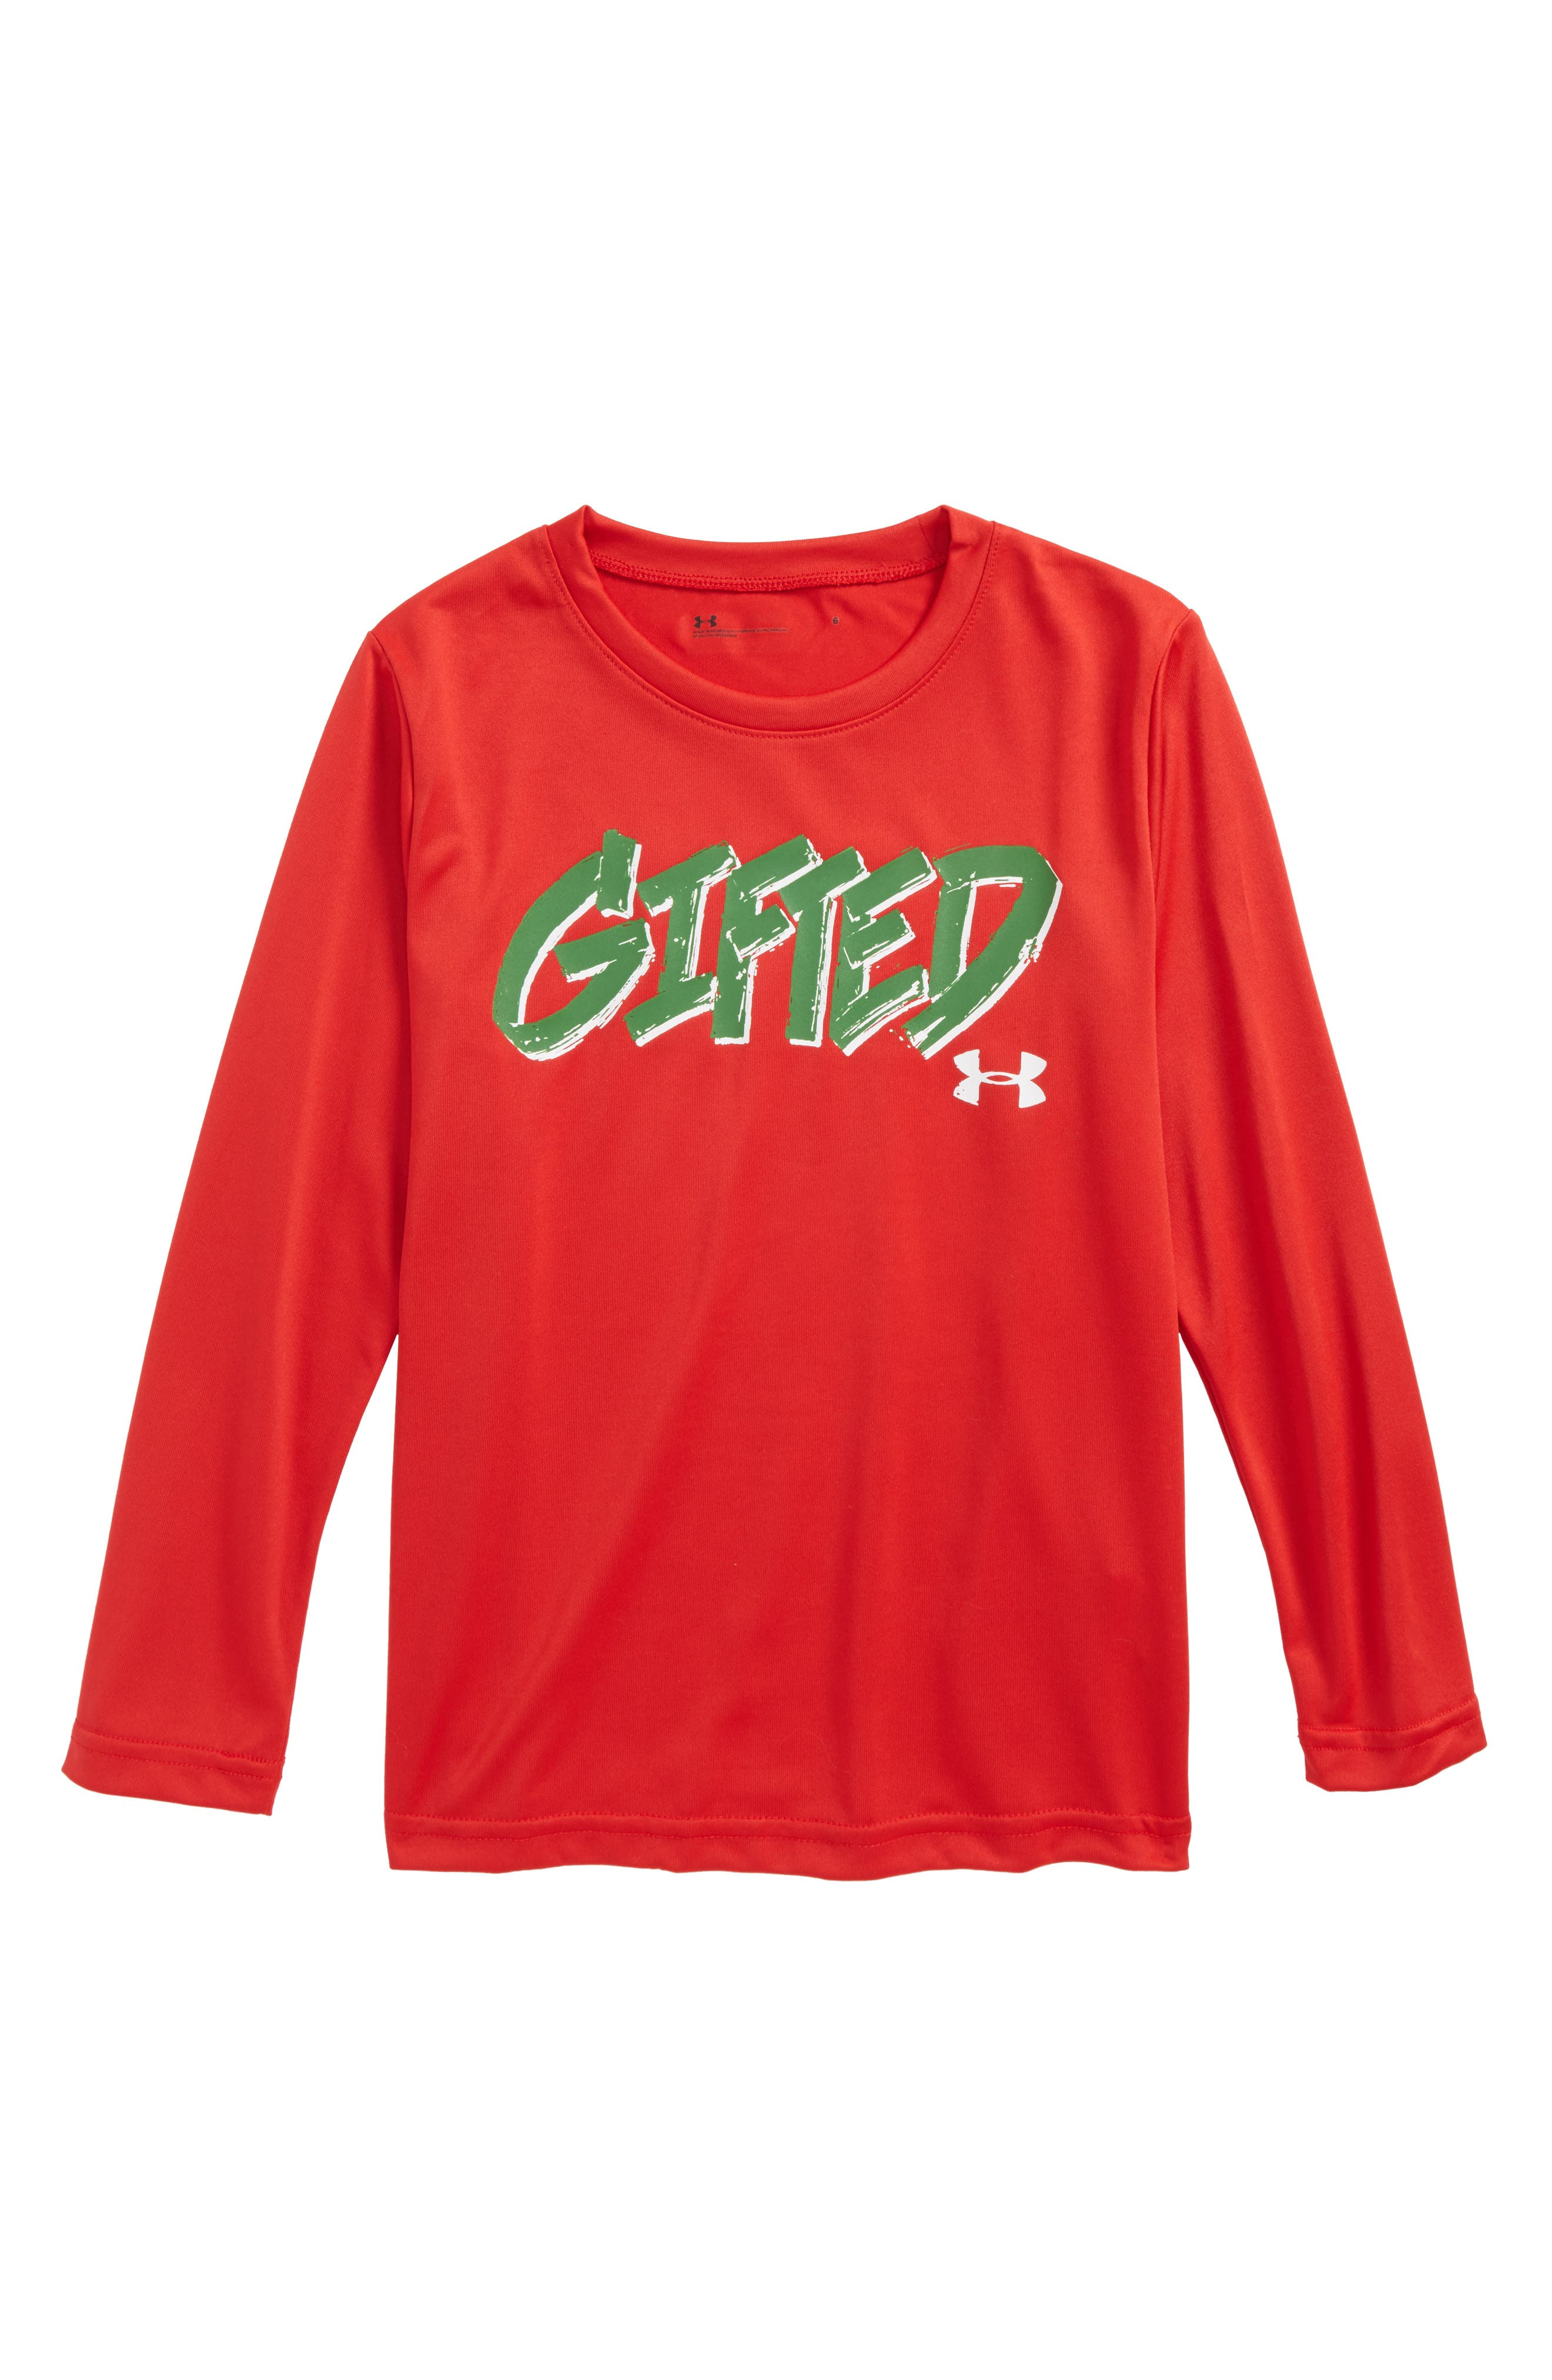 Gifted T-Shirt,                         Main,                         color, 600